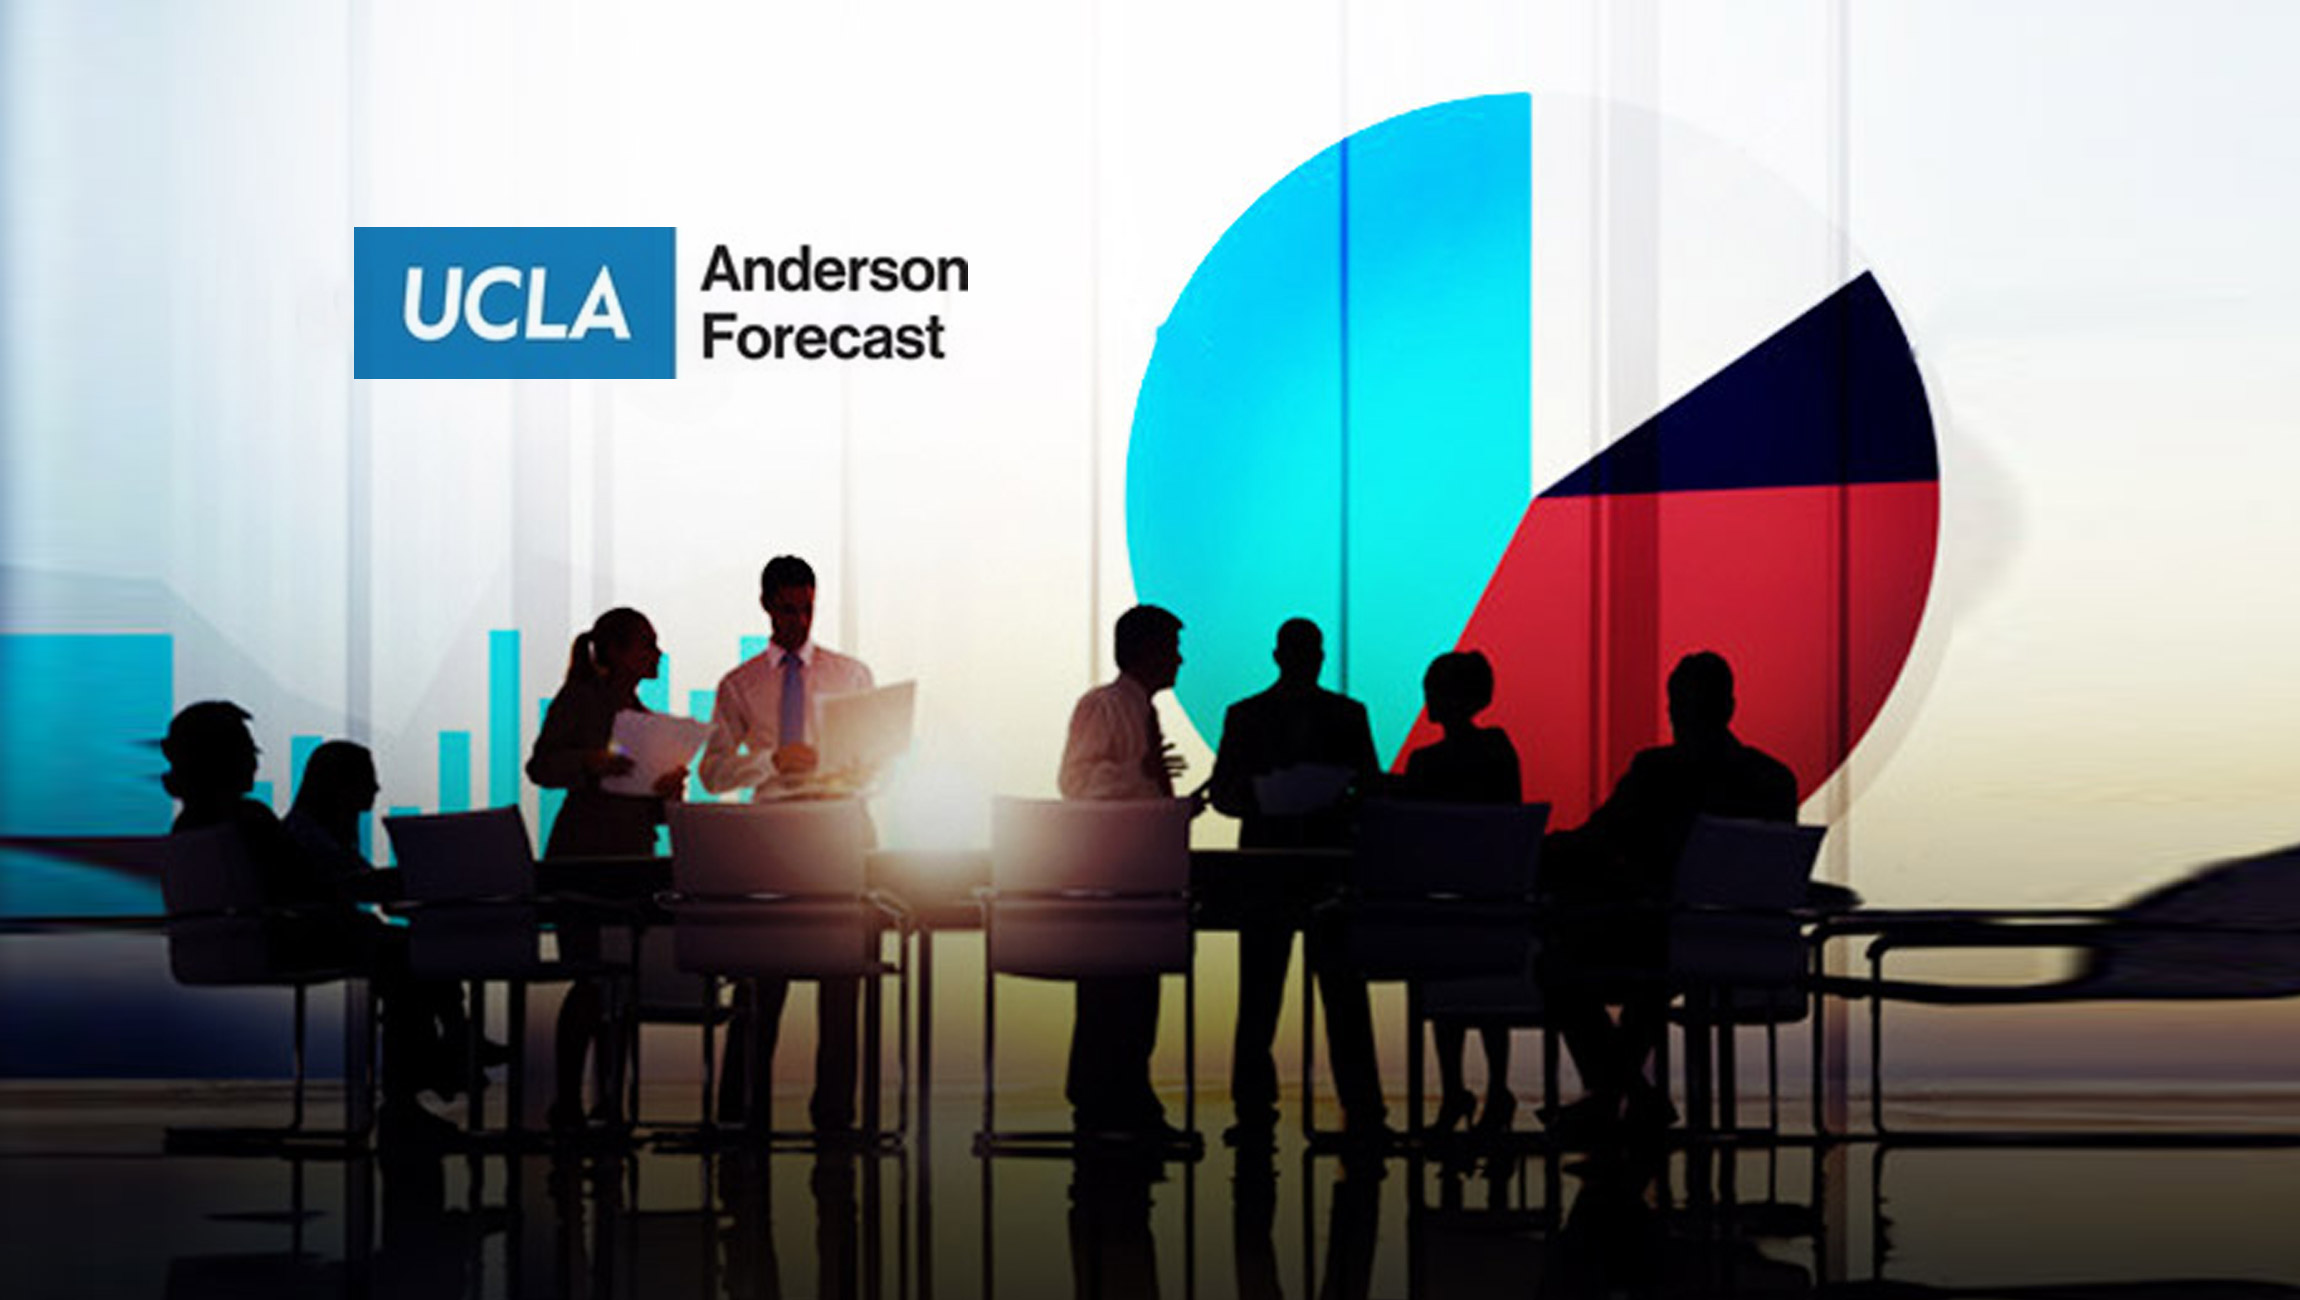 UCLA-Anderson-Forecast-Develops-Unique-Index-to-Track-Online-Microbusiness-Activity